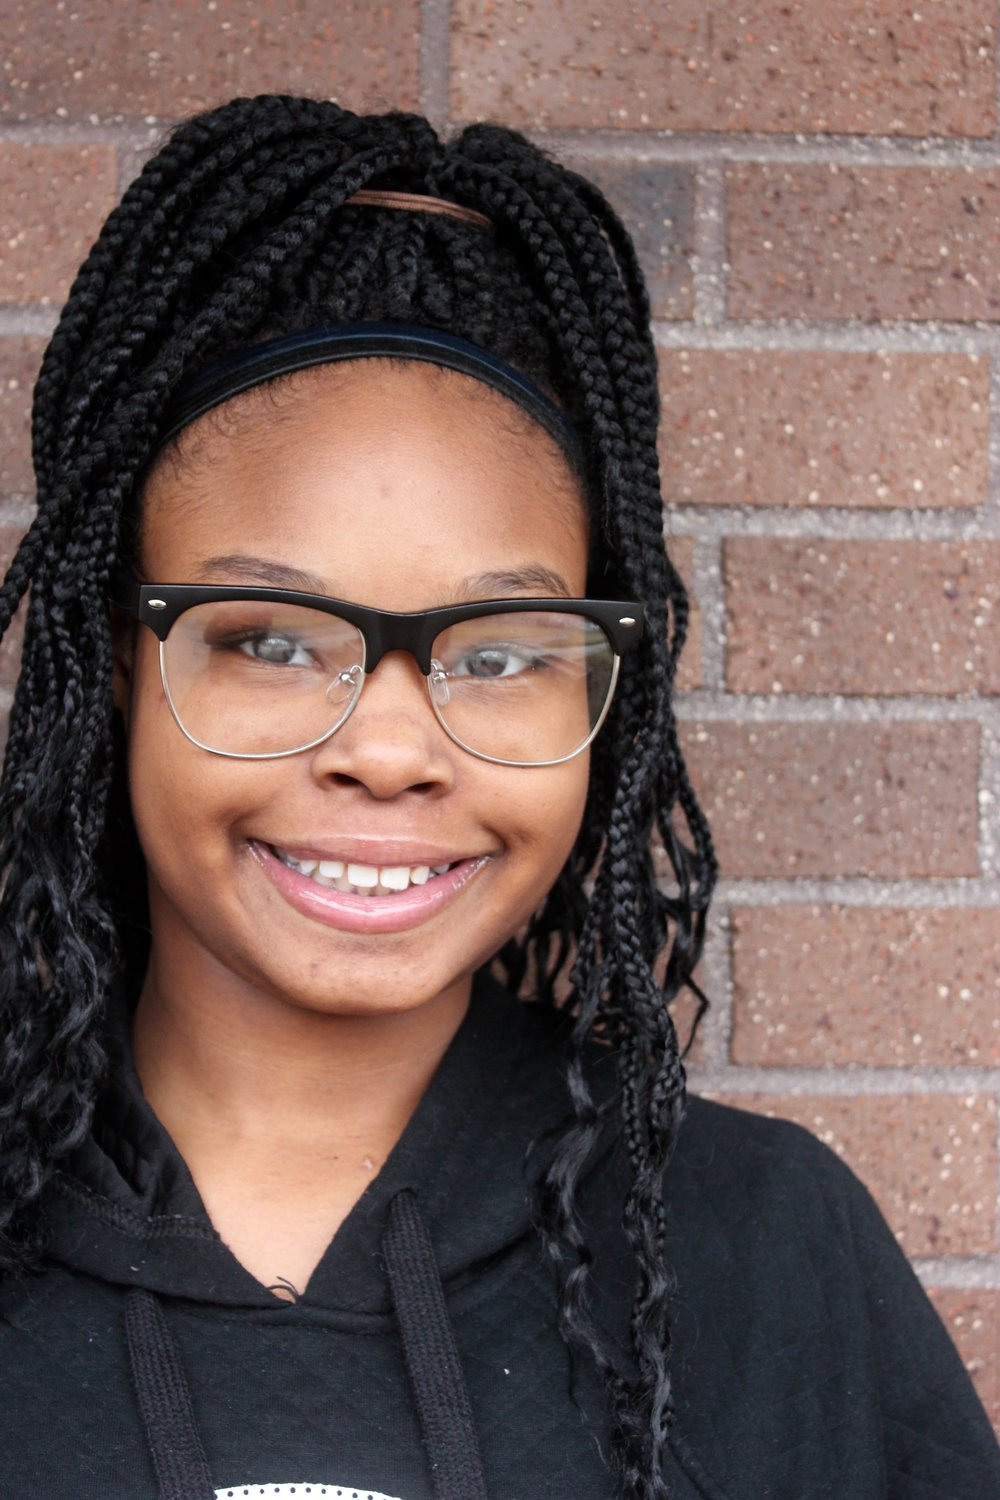 Ahnareiyah   I am Ahnareiyah Boatman. I go to Milwaukee College Prep Lloyd St. I got inspired to write poetry when my granny died. I write about what happens in my life.